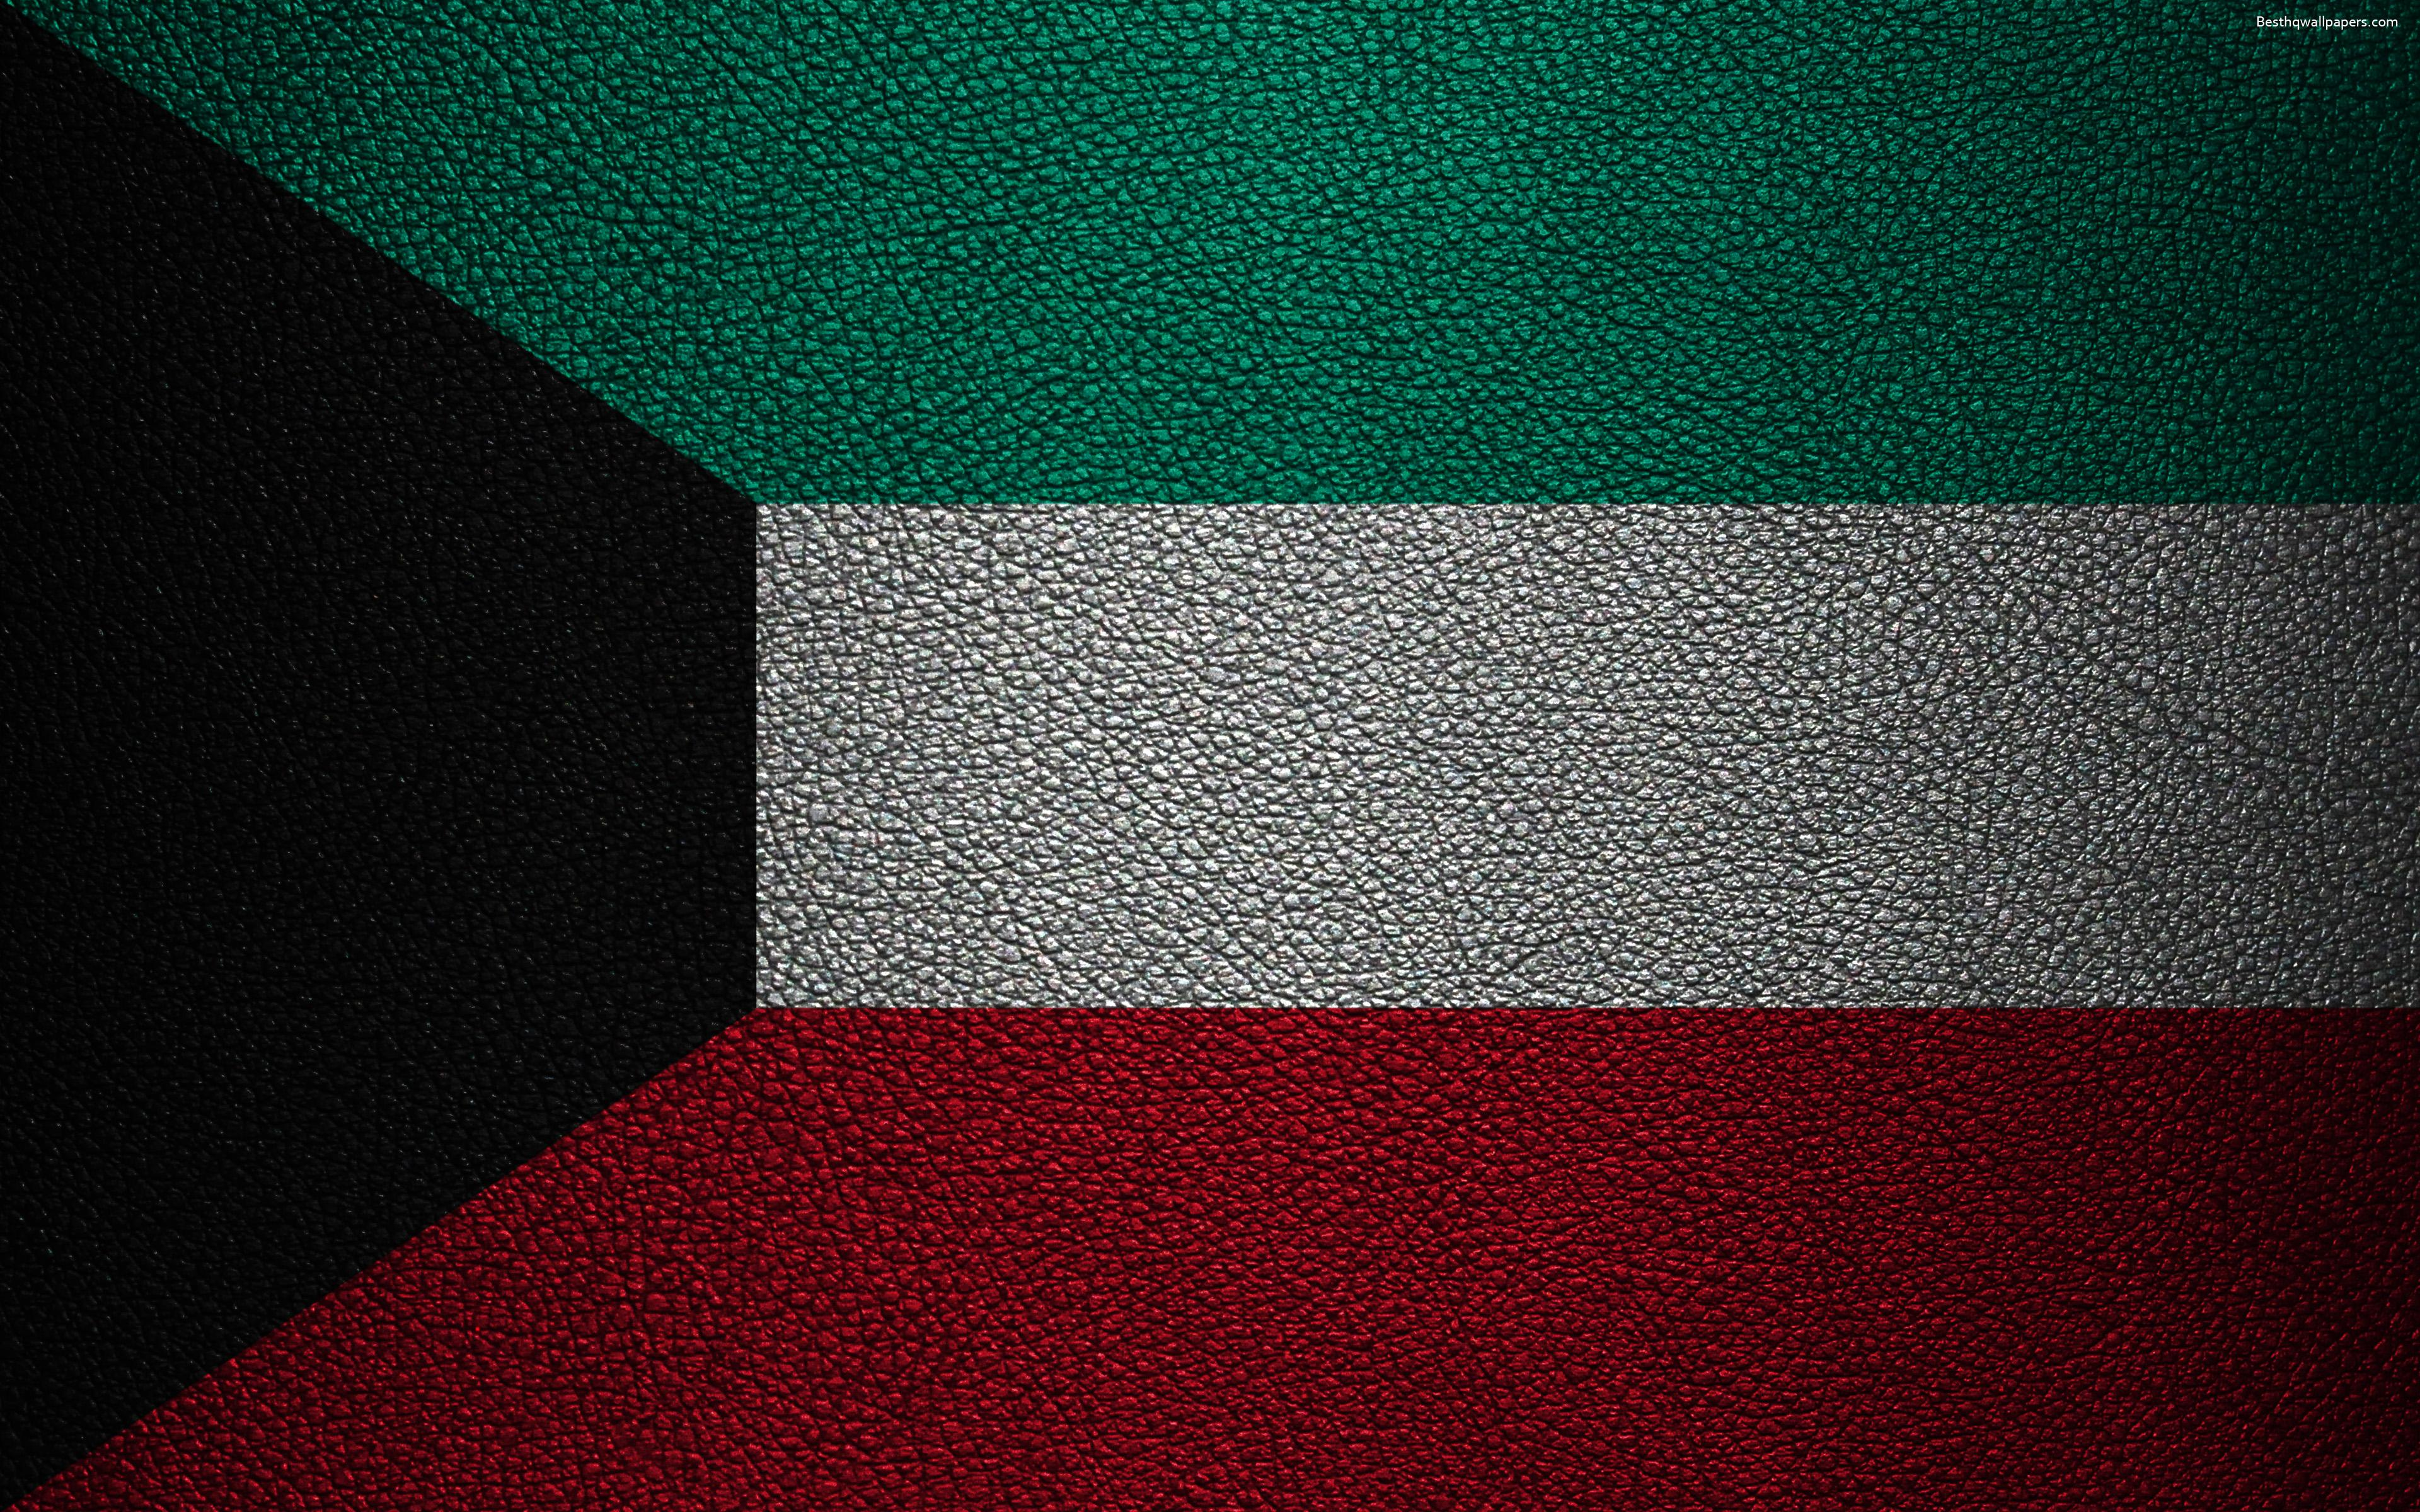 Download wallpapers Flag of Kuwait, 4K, leather texture, Kuwait flag ...